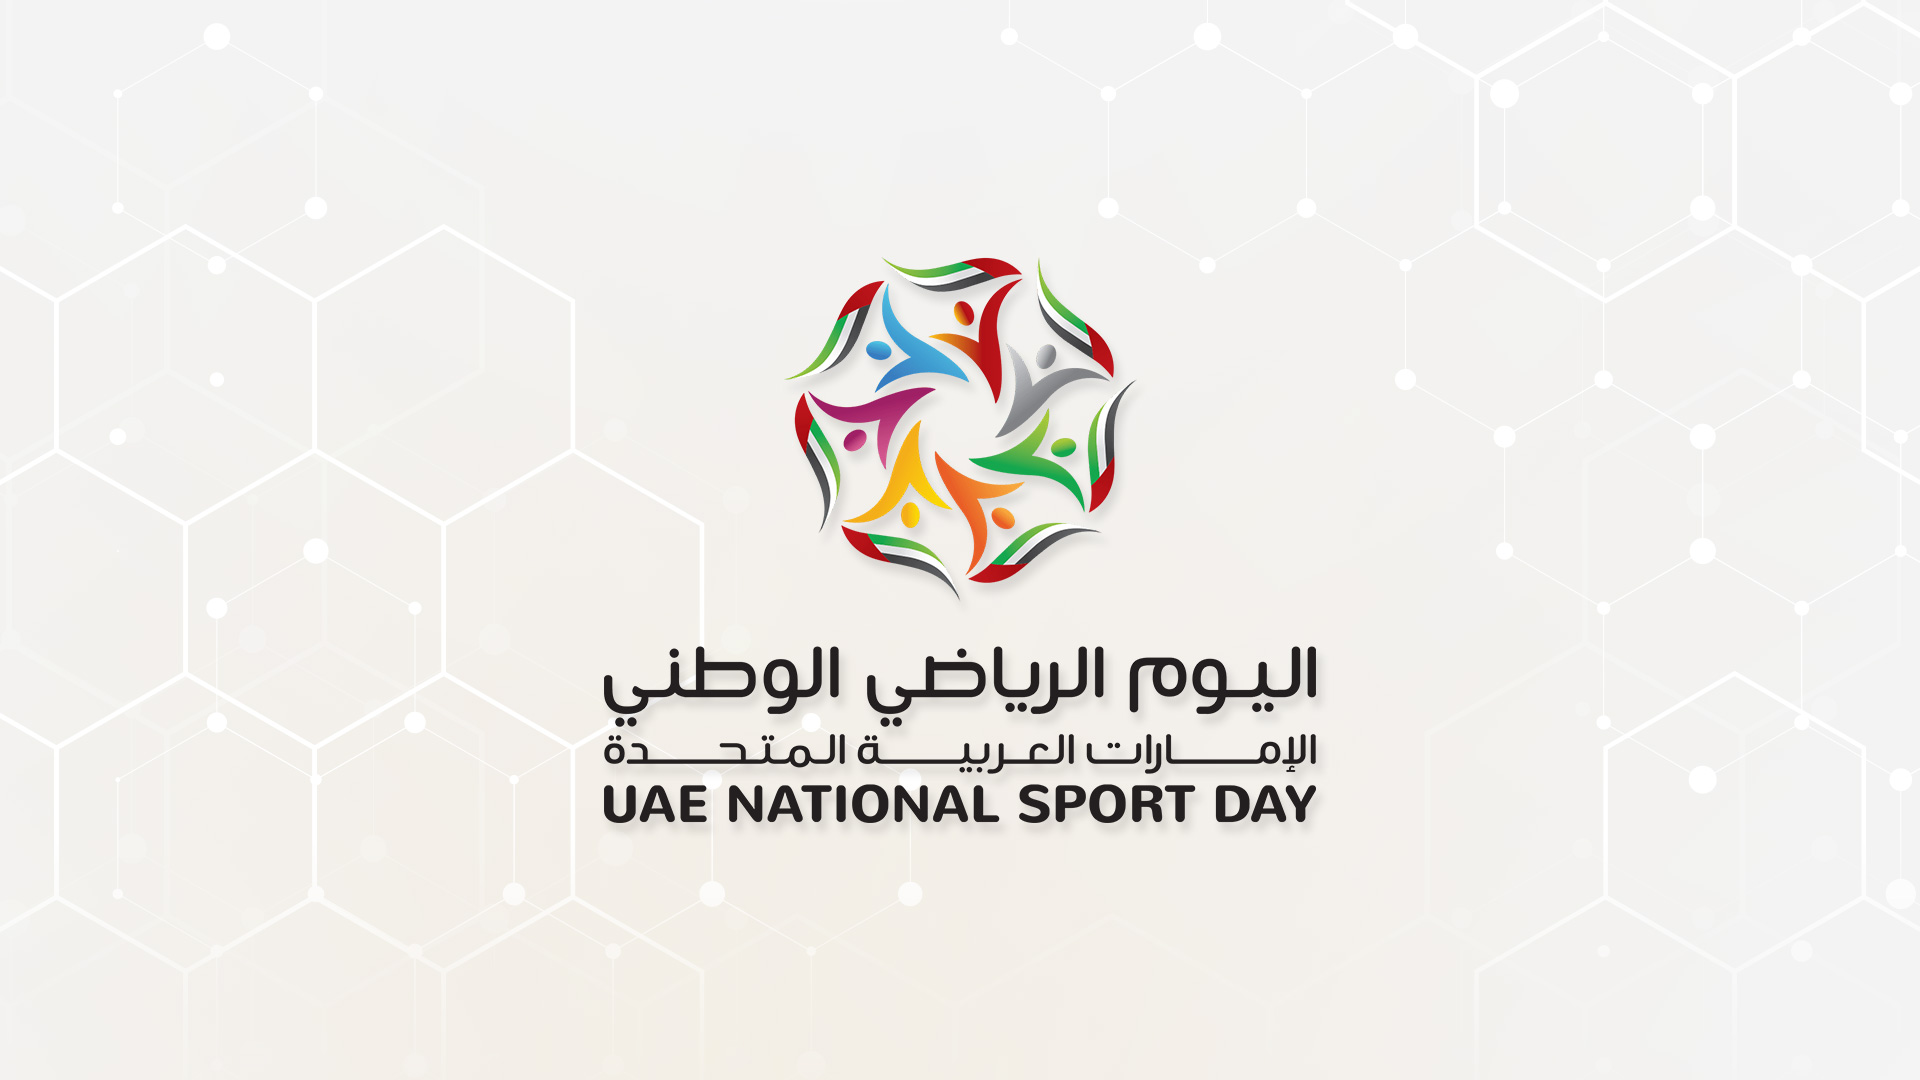 UAE National Sports Day